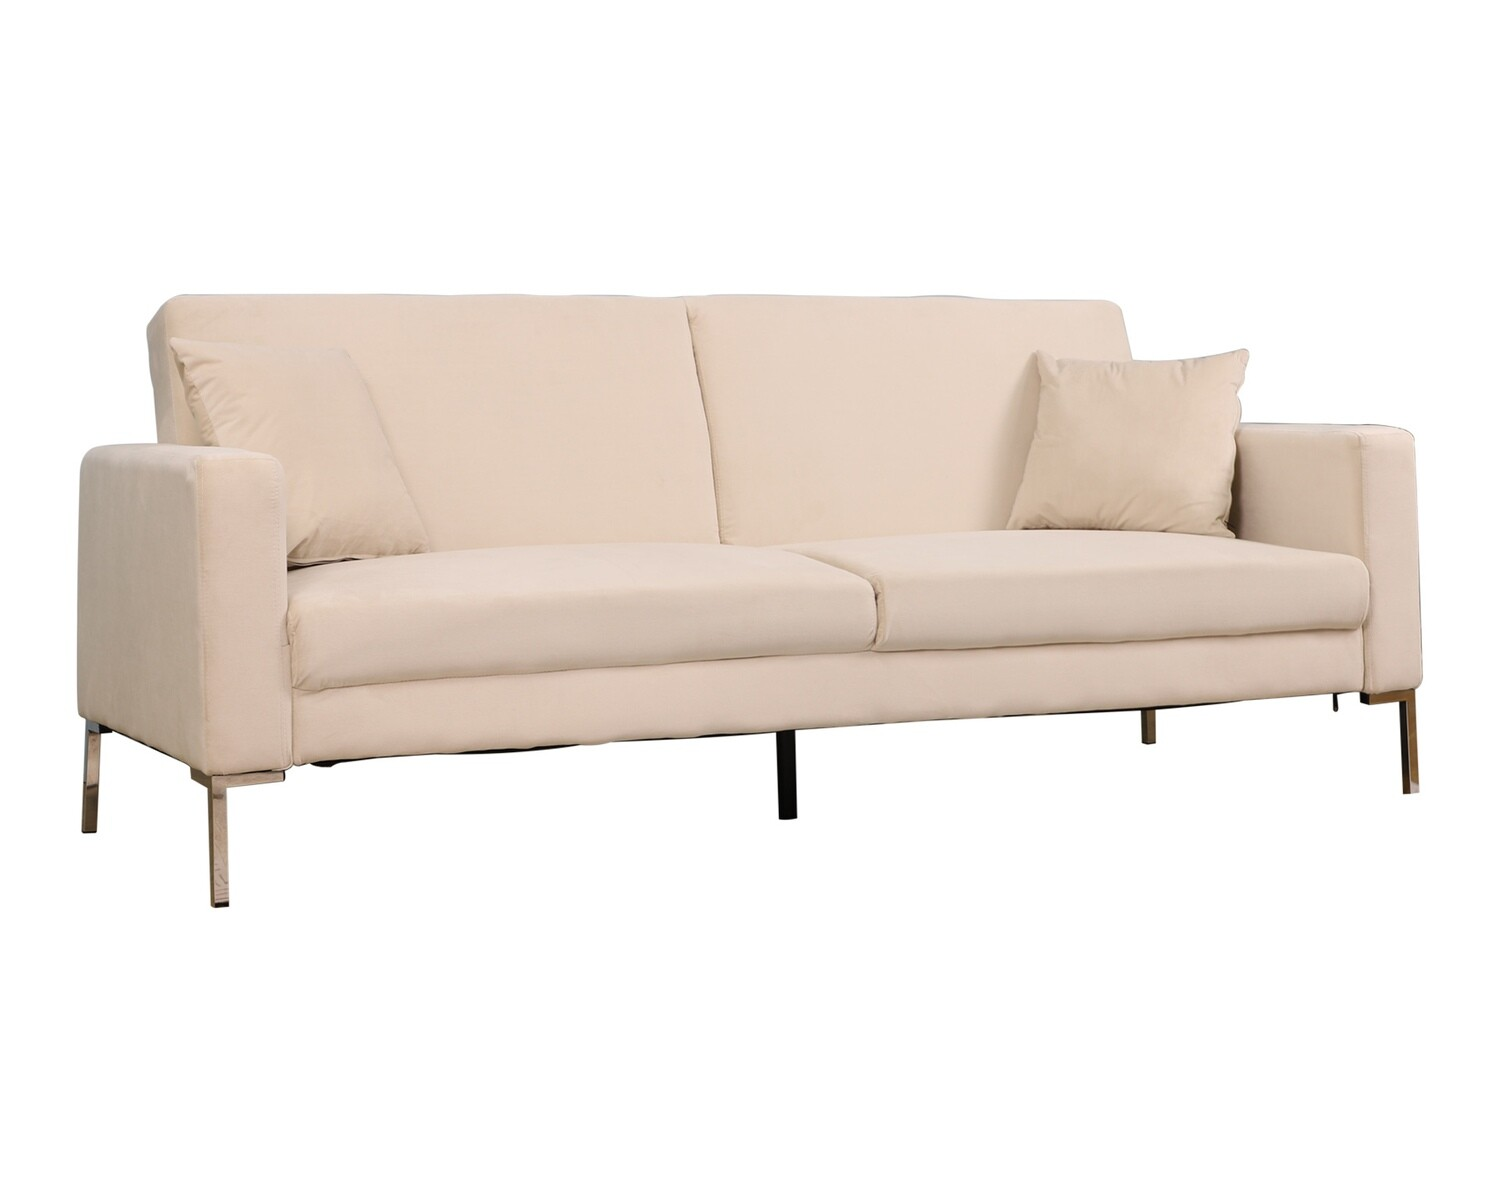 Flotti Fleur Naomi Sofa Bed (Beige, Grey, Navy Blue, Dark Brown)